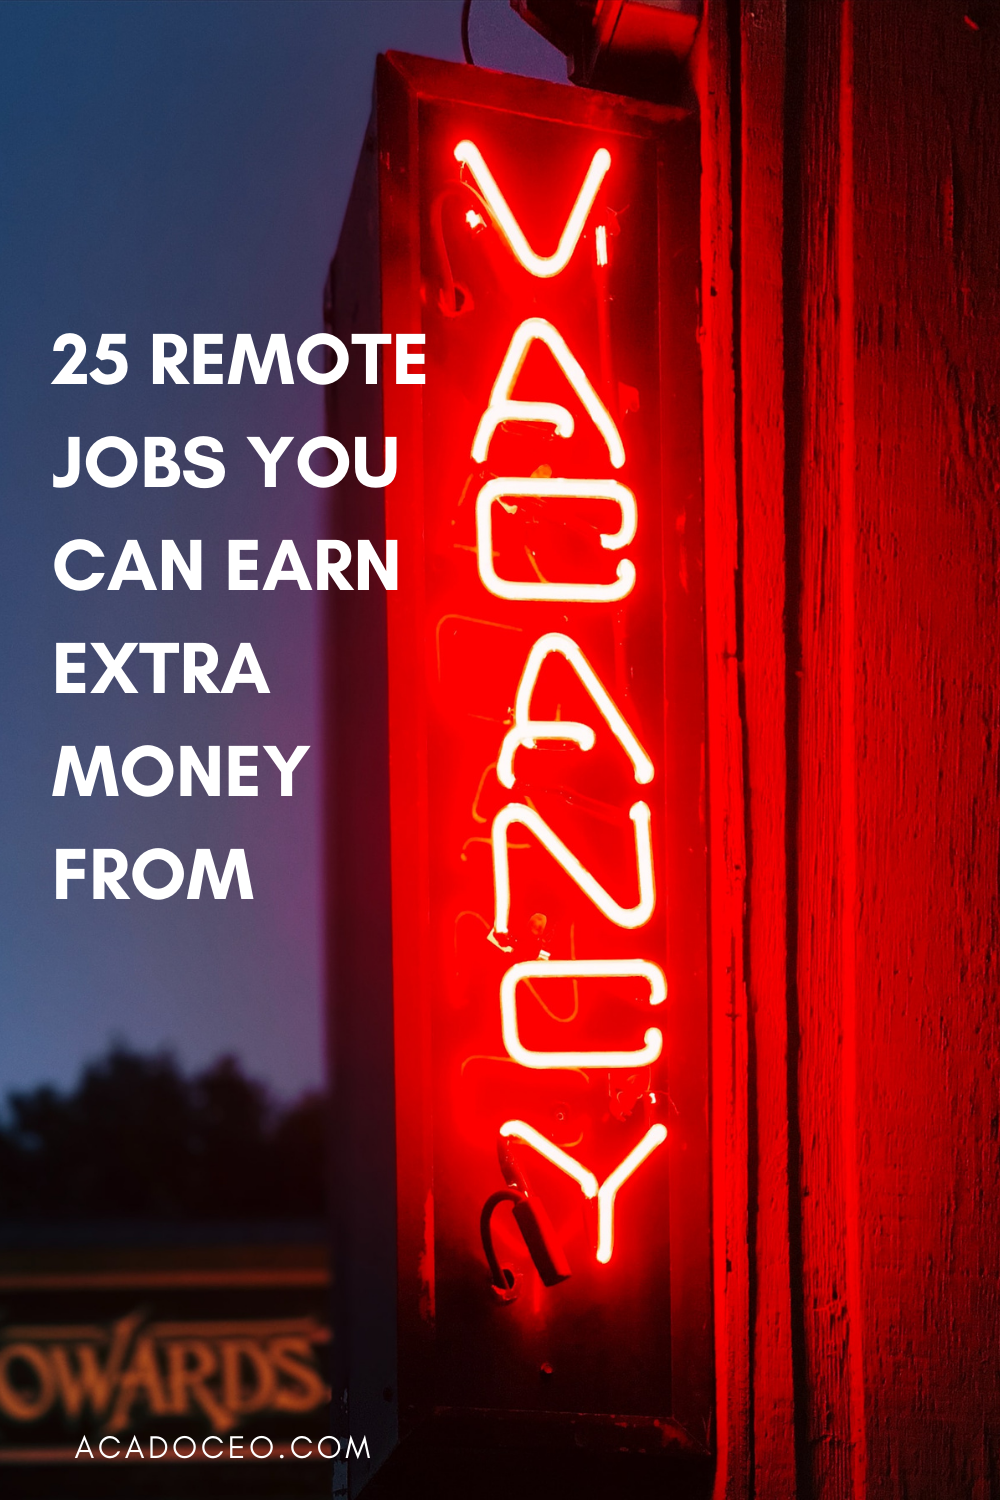 25 REMOTE JOBS YOU CAN EARN EXTRA MONEY FROM